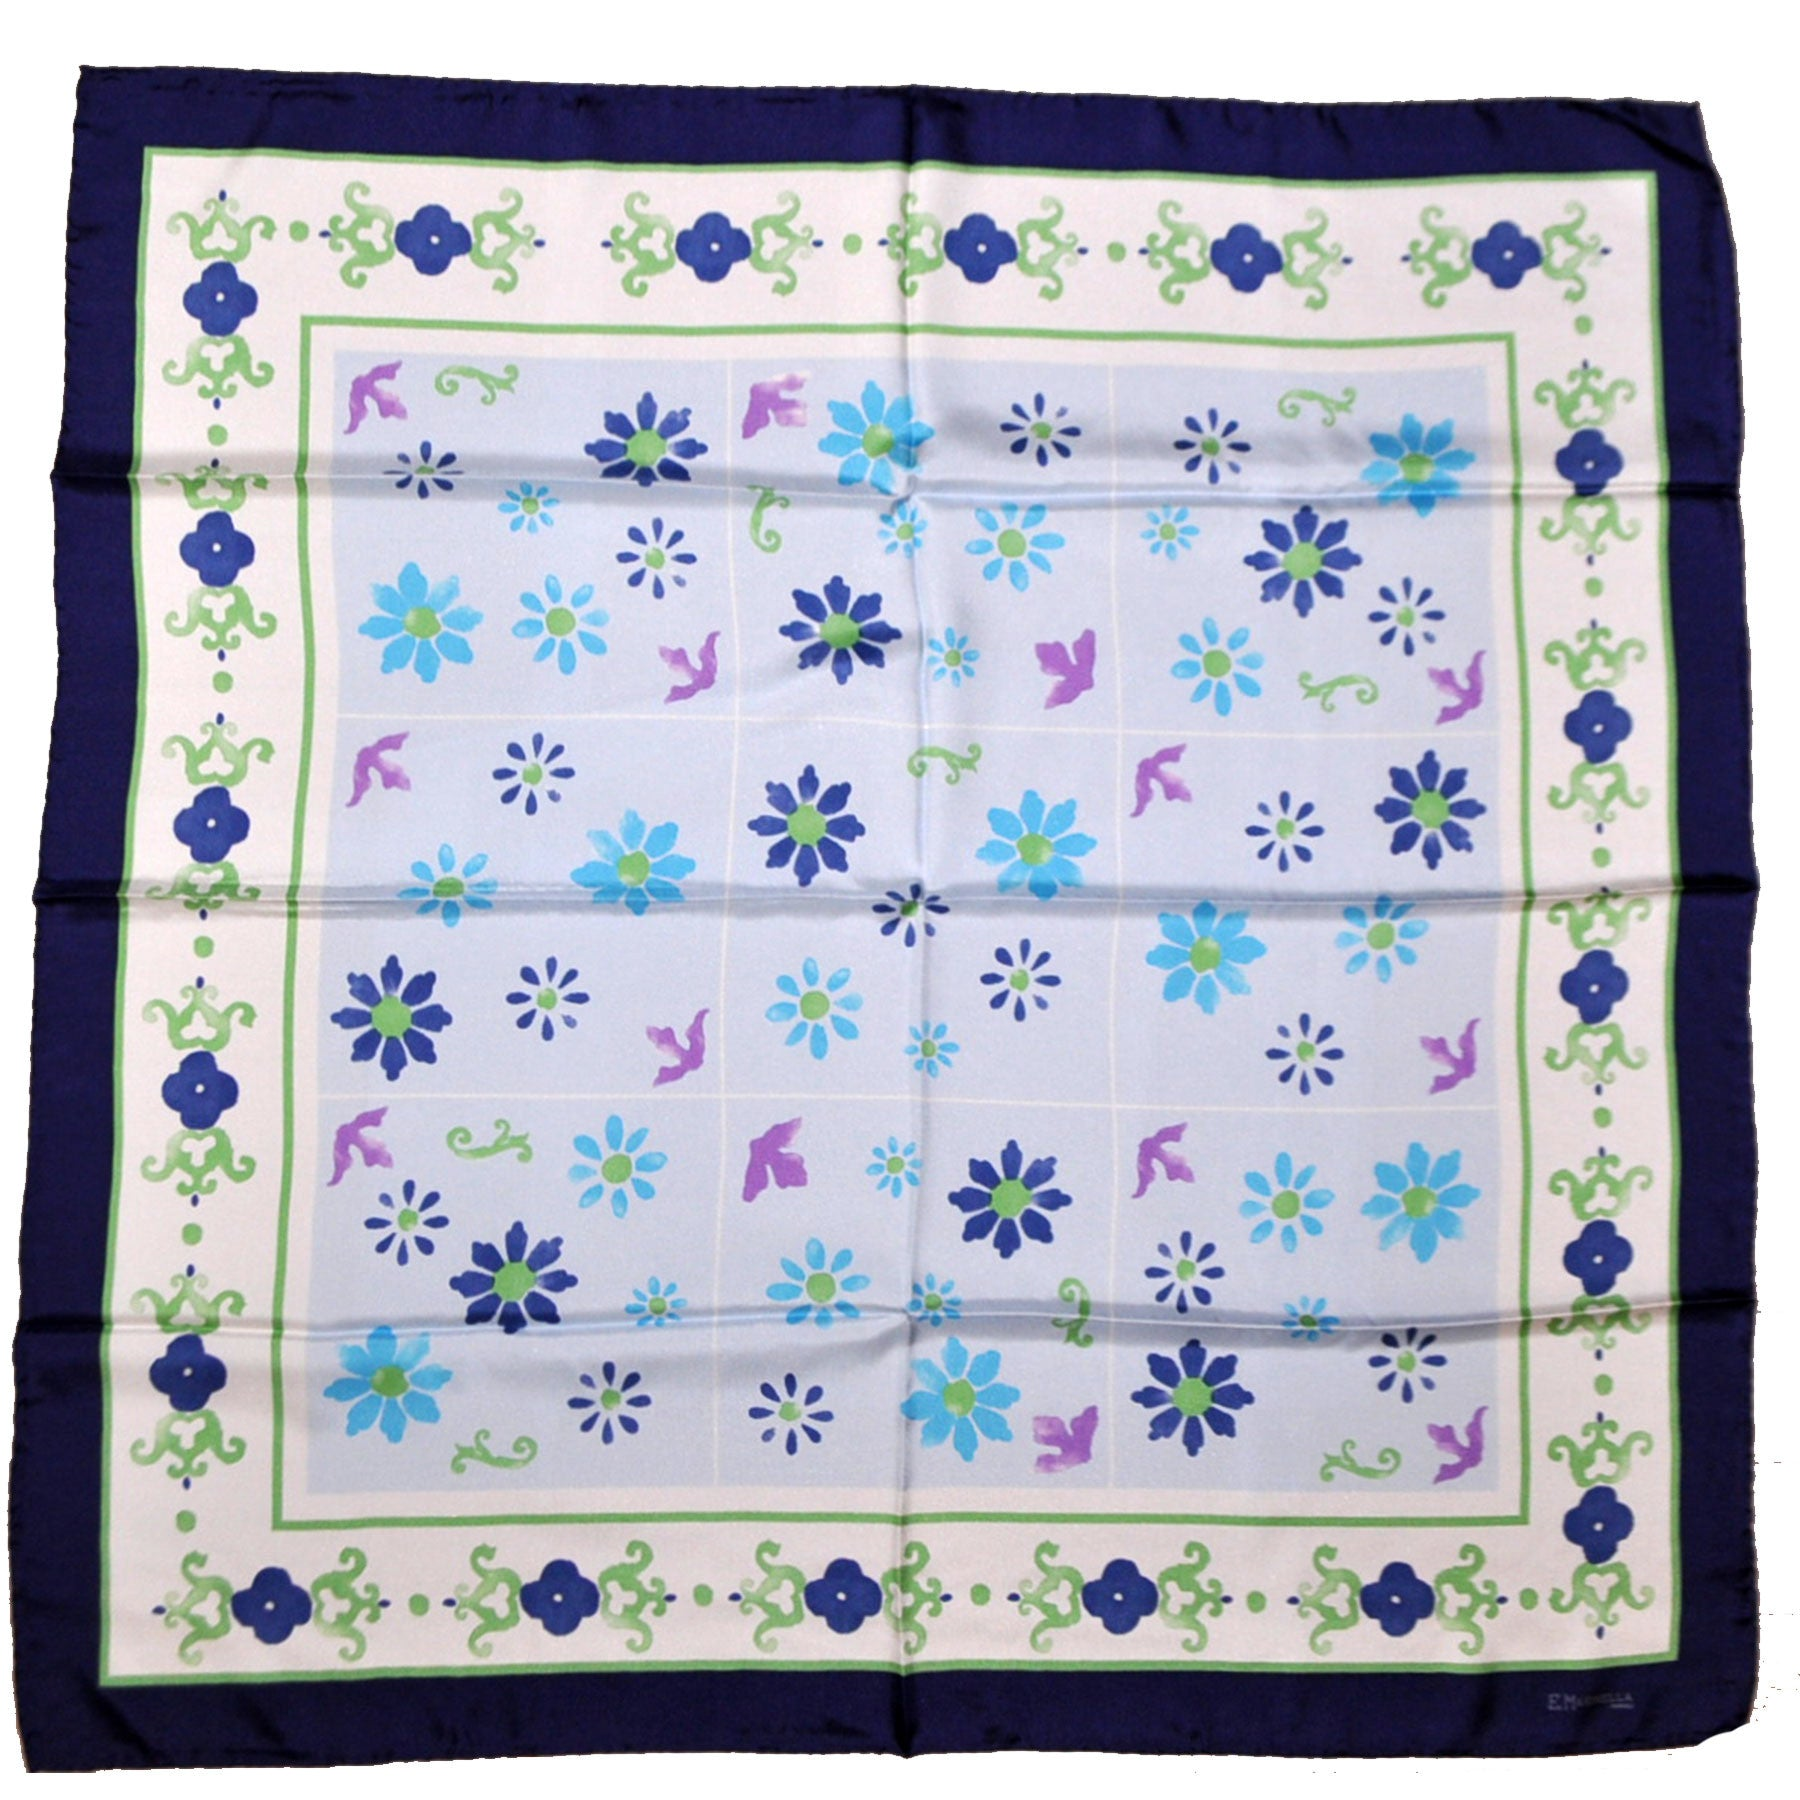 Marinella Silk Square Scarf Navy Sky Blue Green Flowers